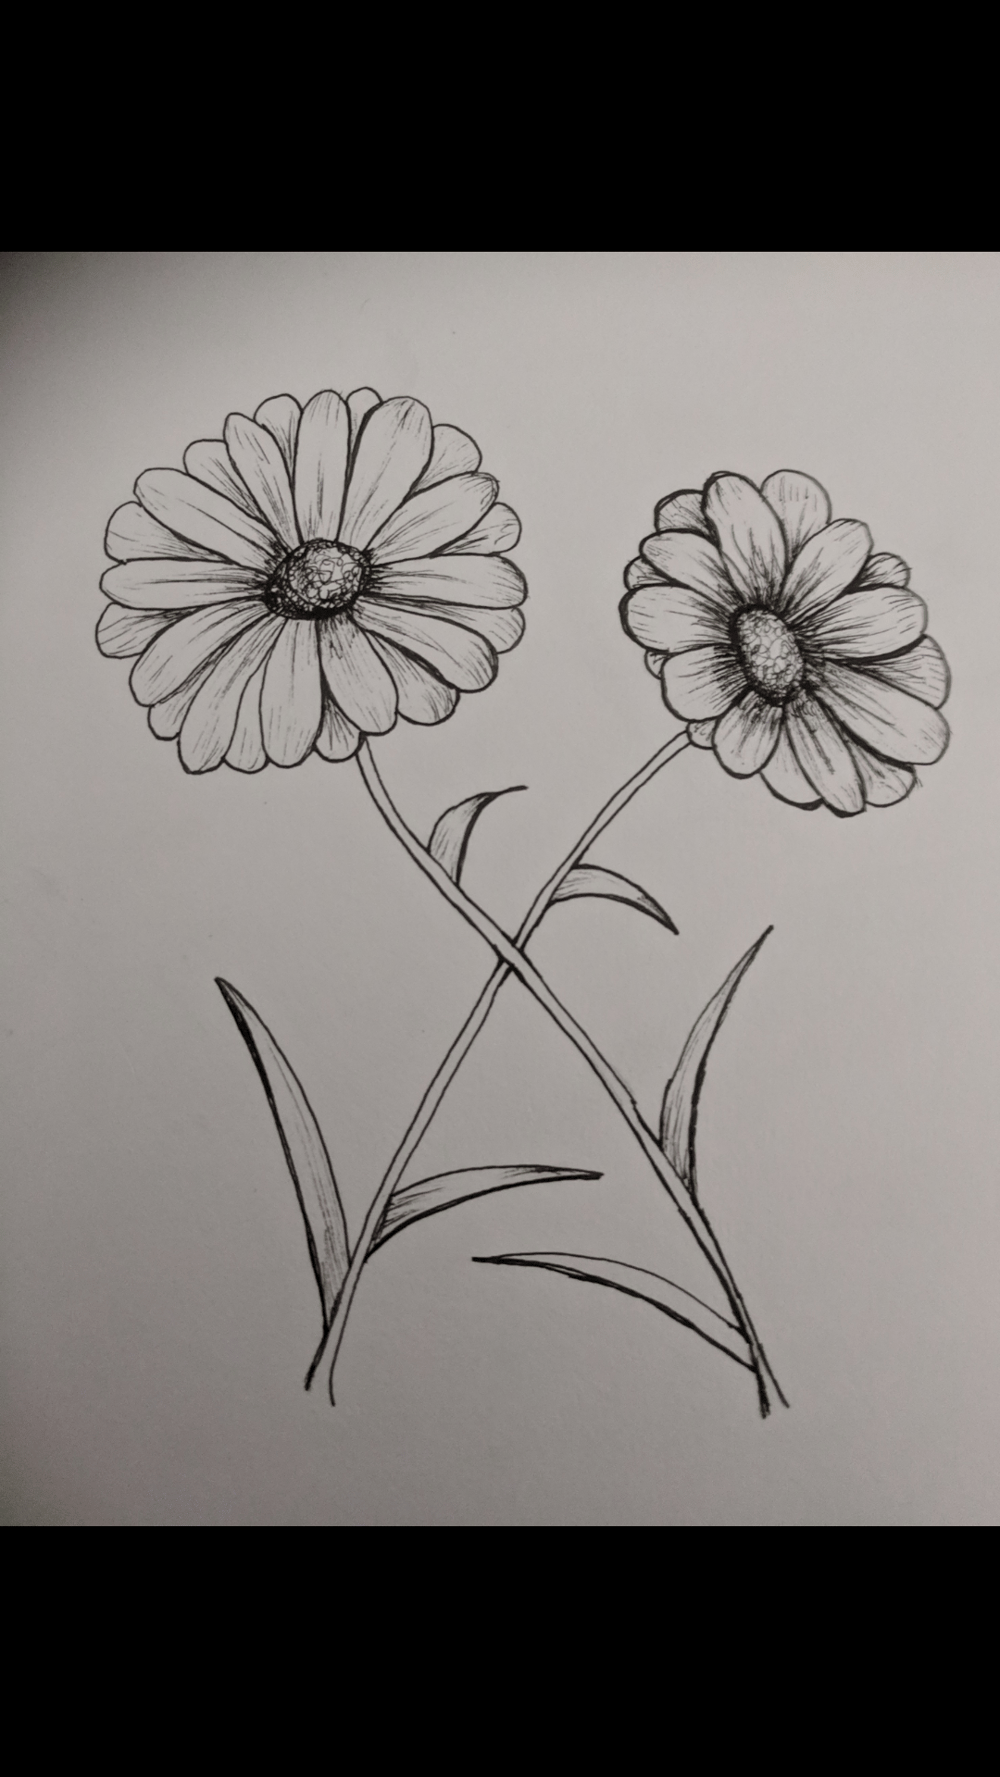 Fun Flowers - image 1 - student project